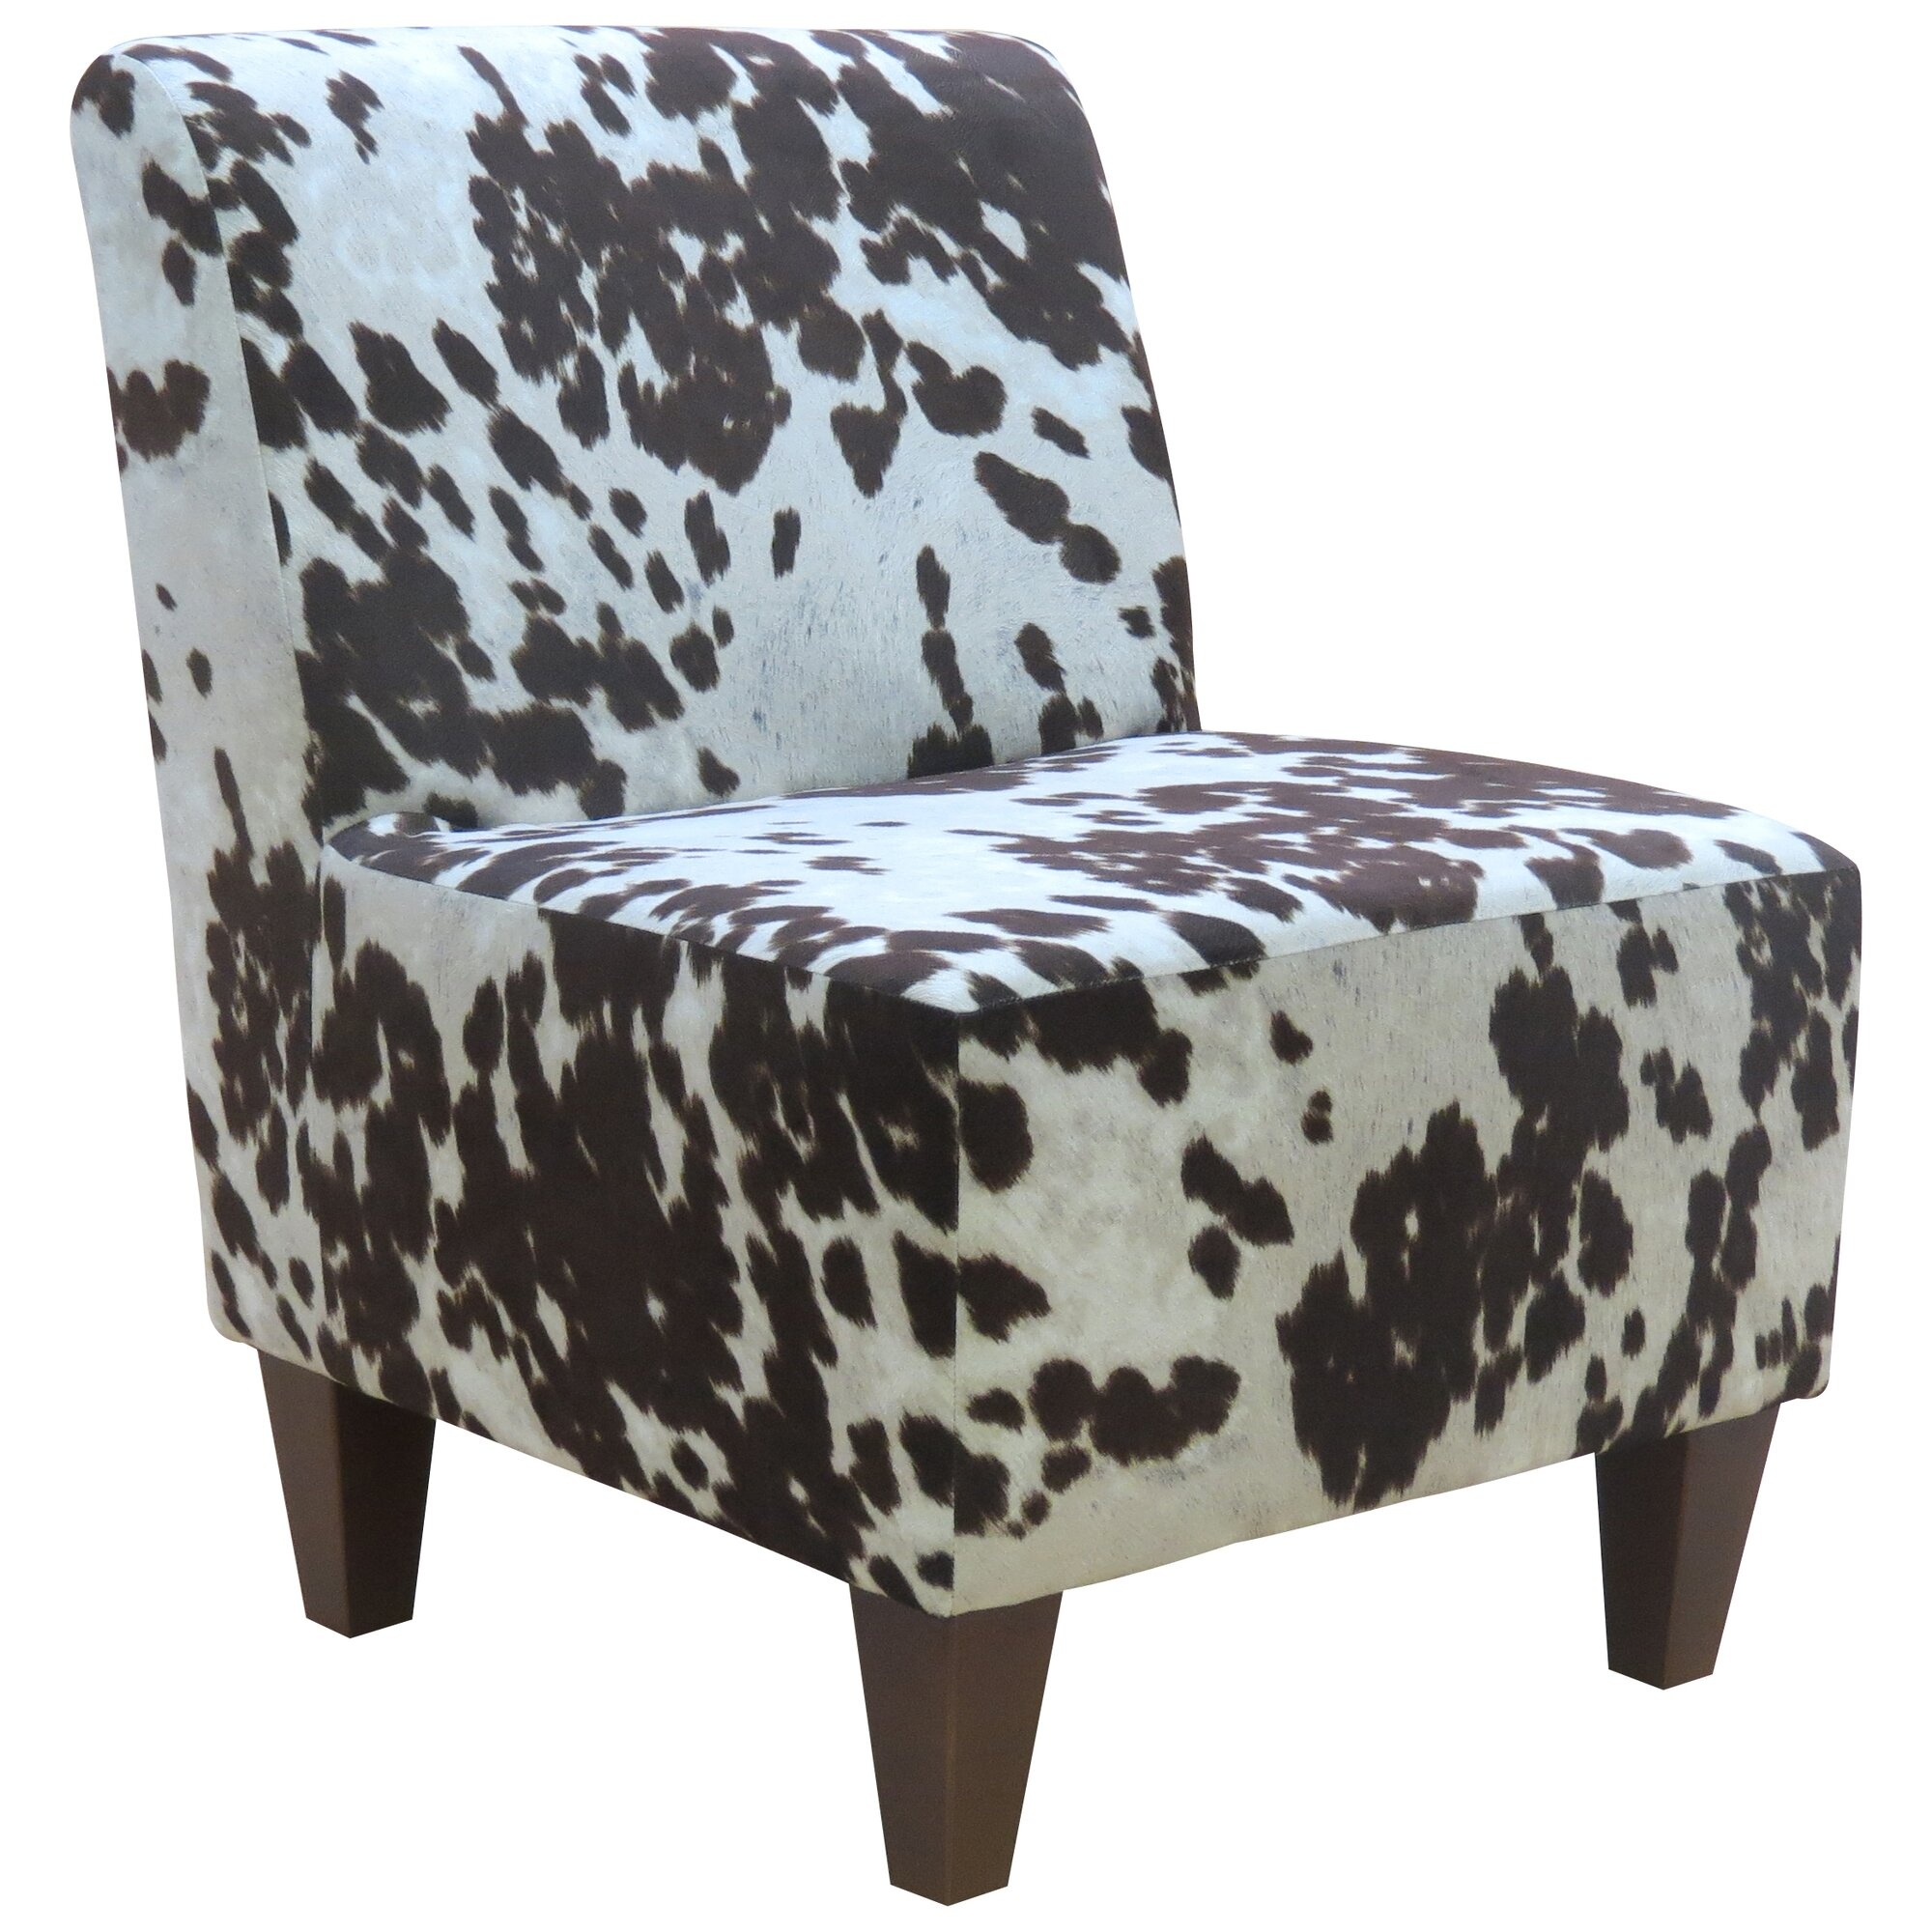 Cowhide Armchair Furniture Handsome Pair Antique Cowhide Chairs